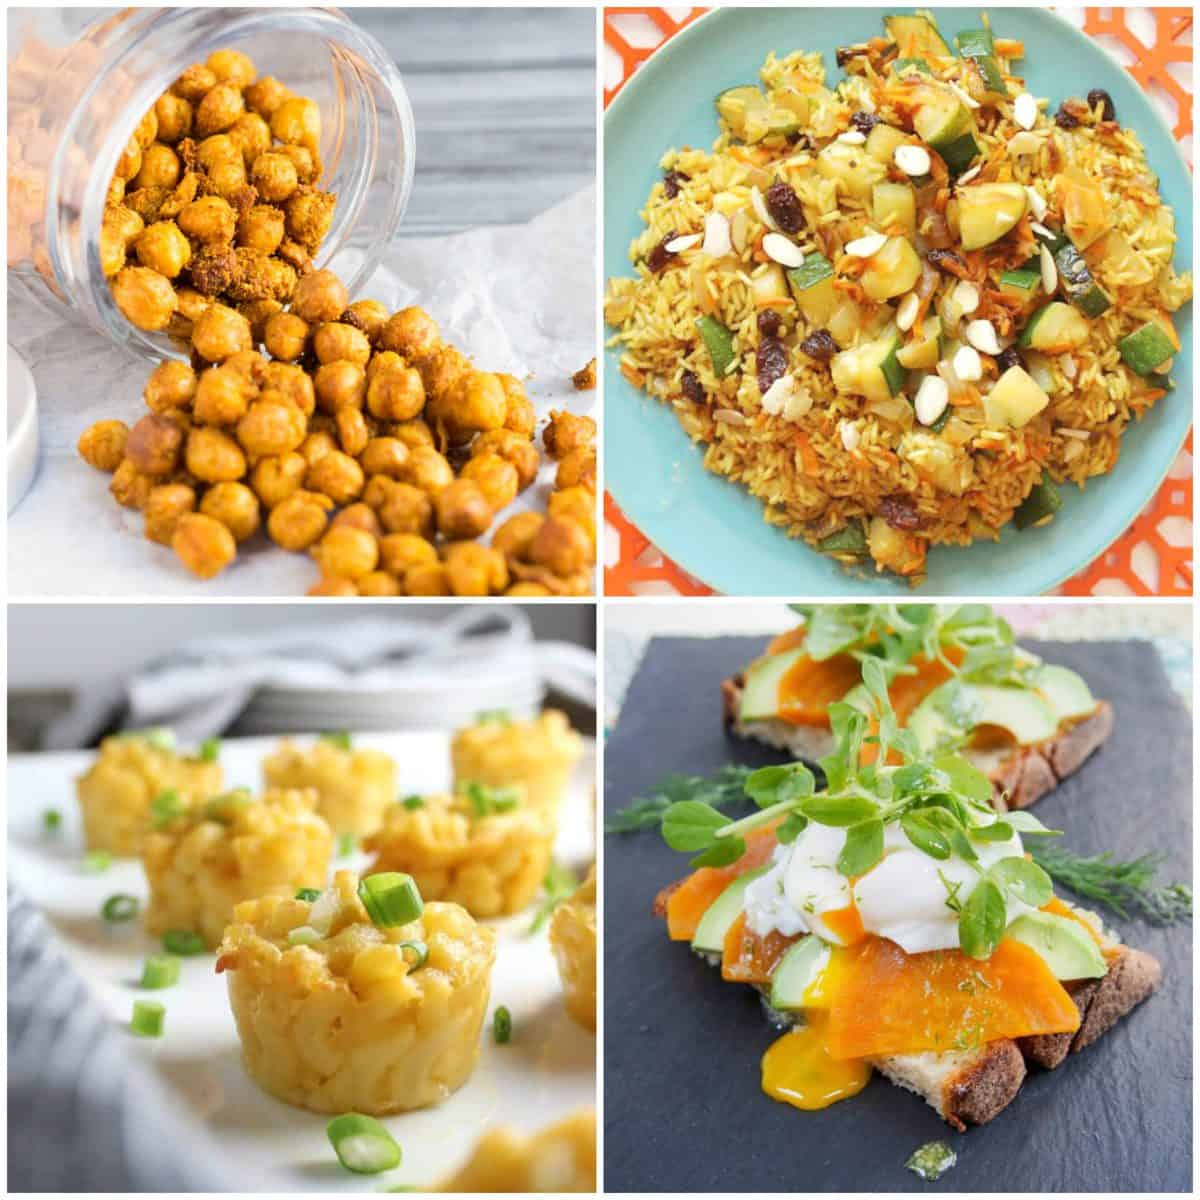 Roasted chick peas, macaroni and cheese cups and more are perfect Pot o' Gold St. Patrick's Day recipes to celebrate with